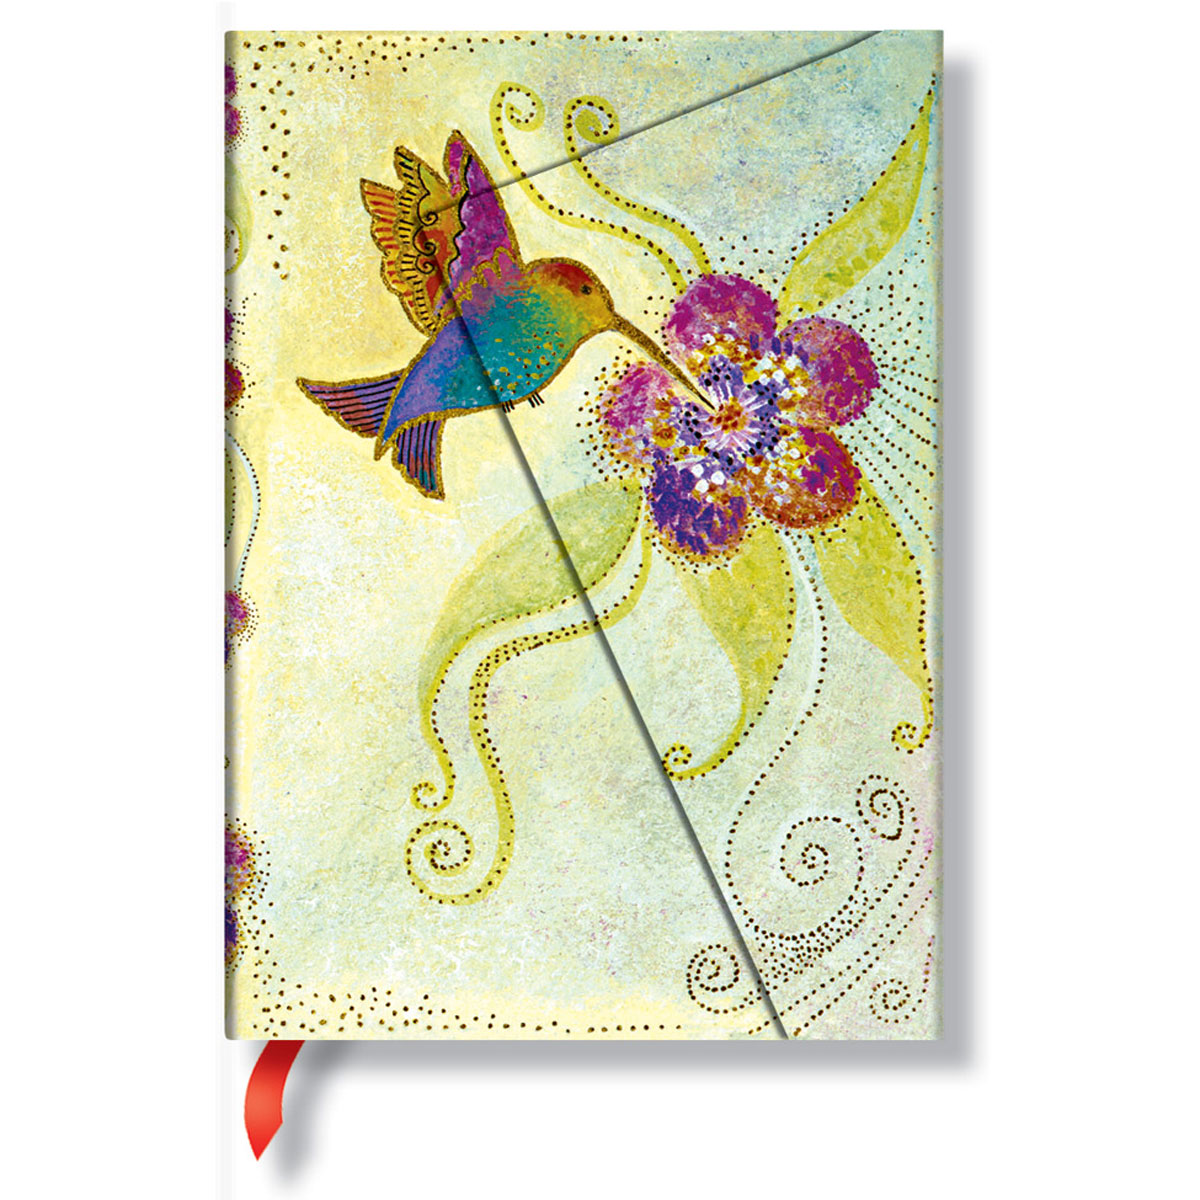 Paperblanks Laurel Burch Hummingbird Midi 5x7 Inch Journal